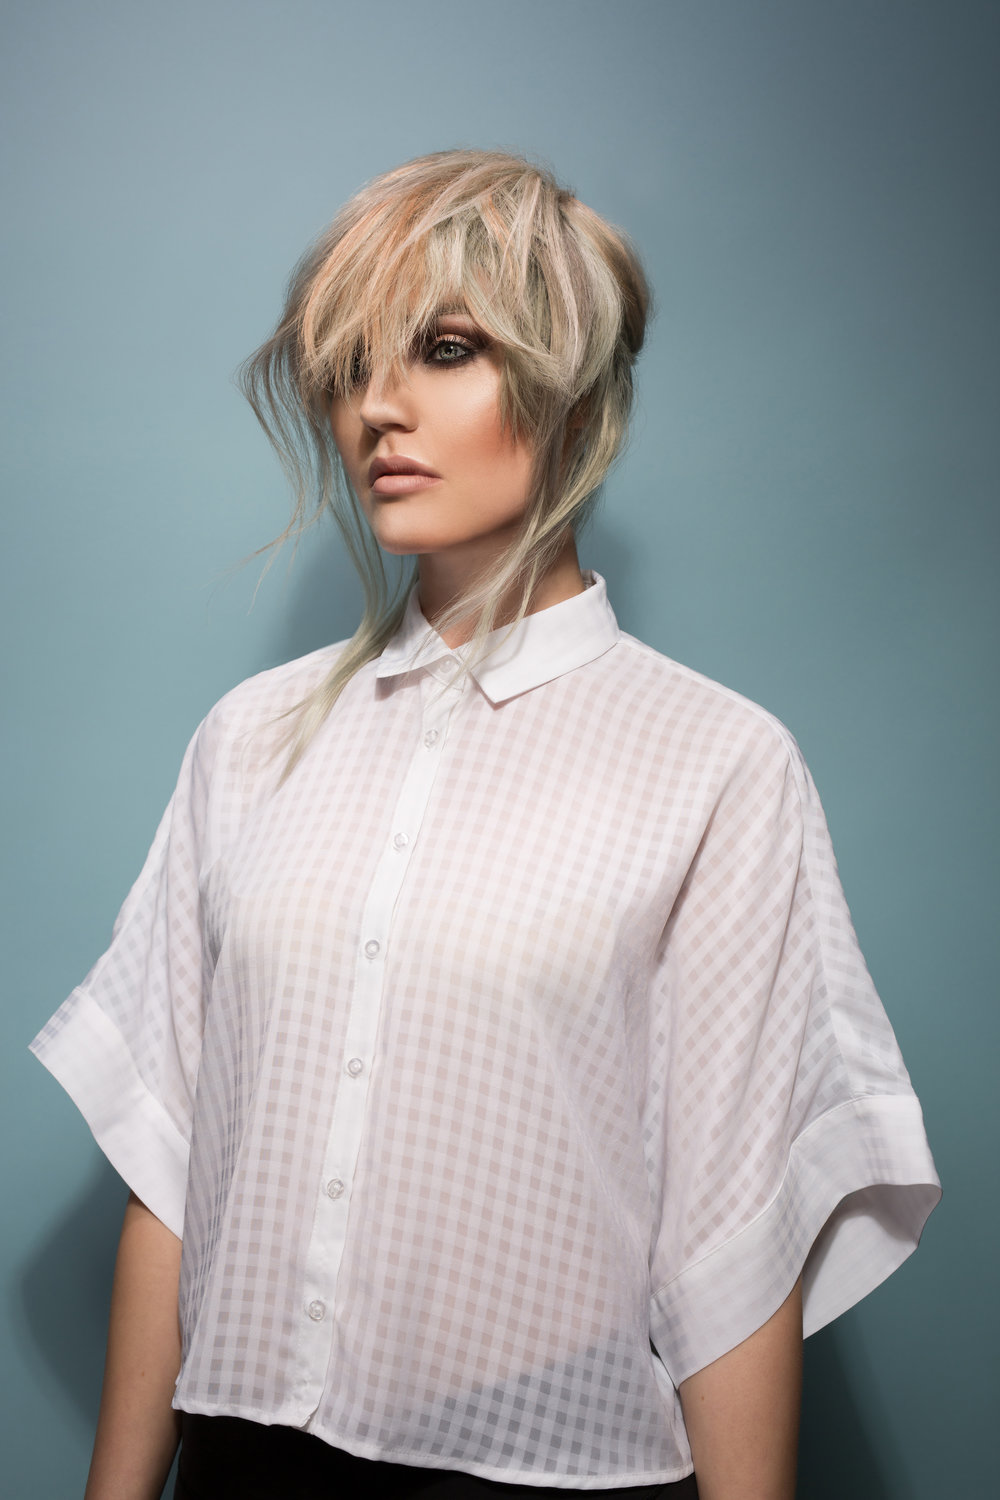 Get those ends trimmed and maintain your healthy locks. Our nationally and internationally acclaimed team offers cuts for both men and women, delivering sophisticated styles.